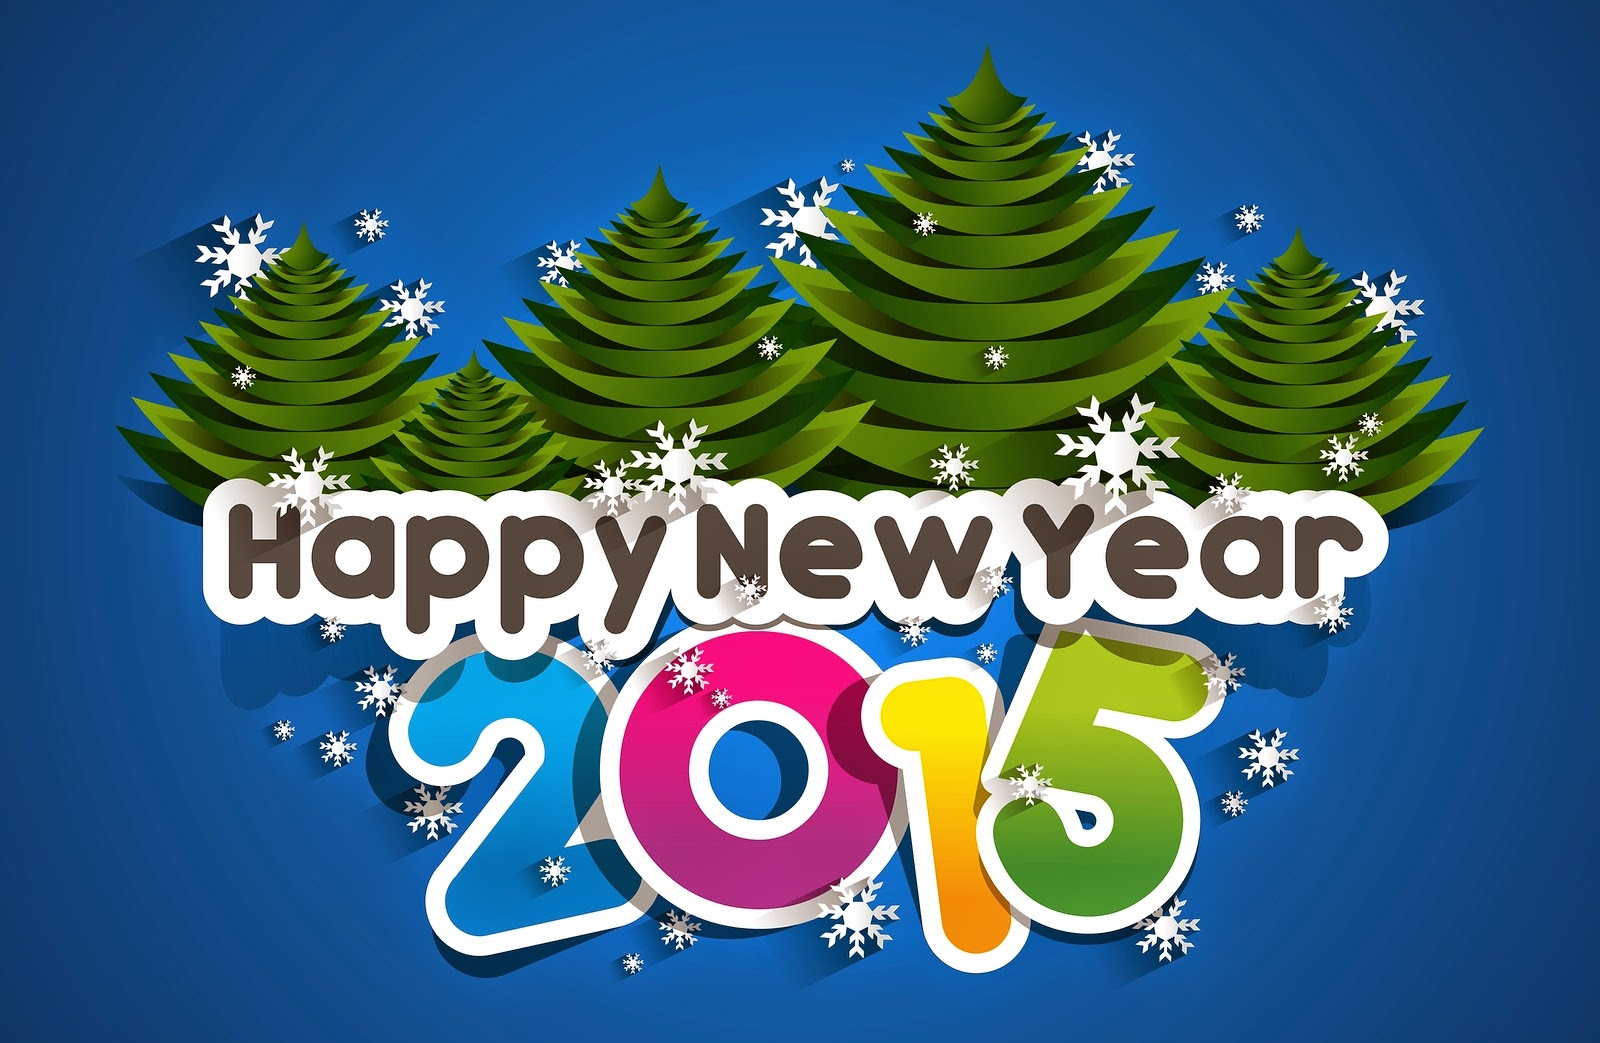 Happy New Year 2015 Snow Images HD